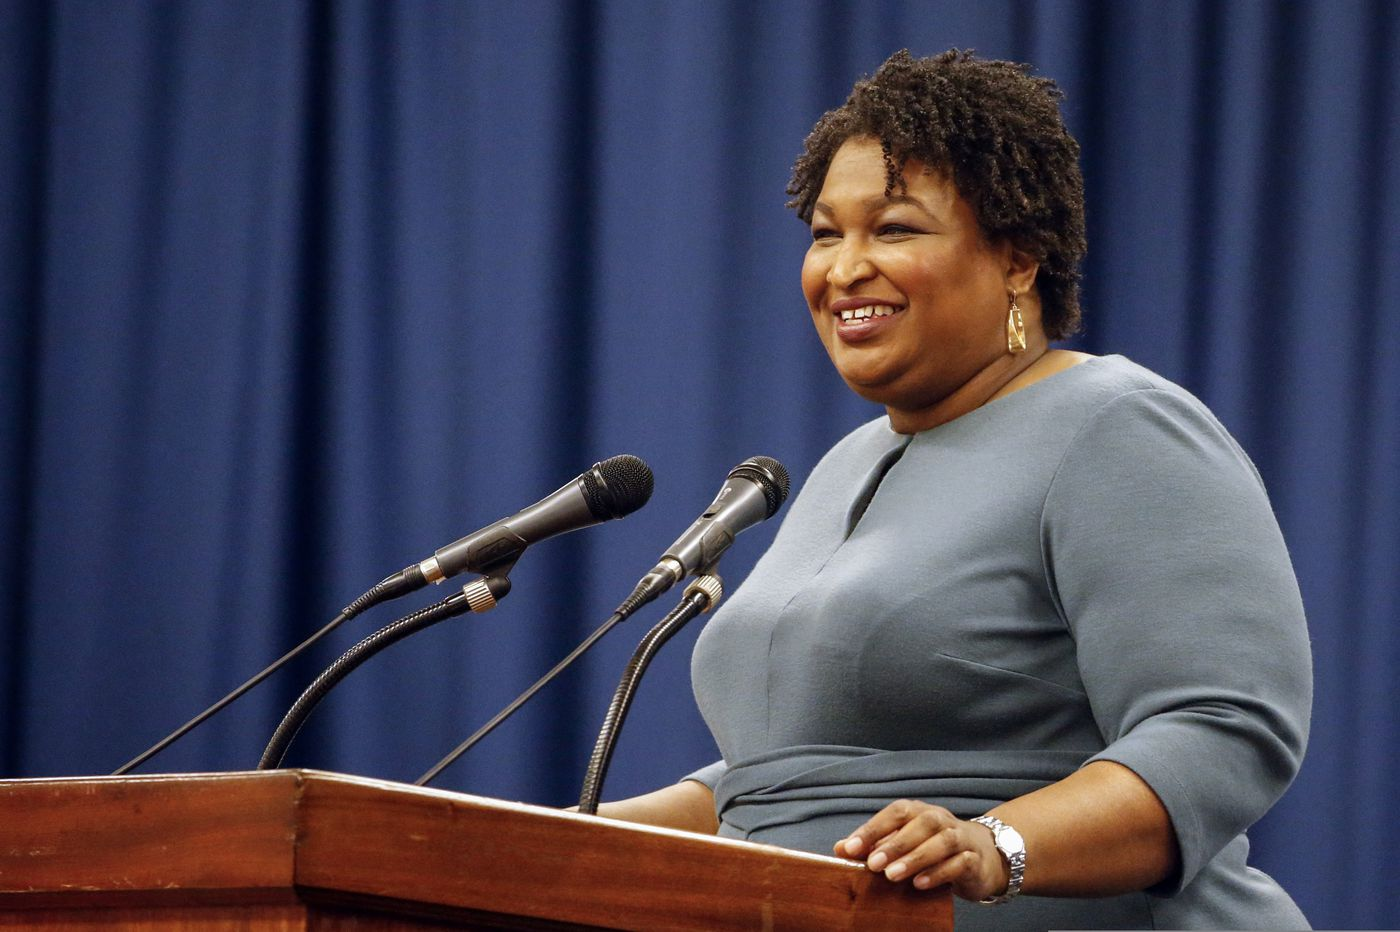 Stacey Abrams pours the sting of loss into making sure others can vote | Solomon Jones